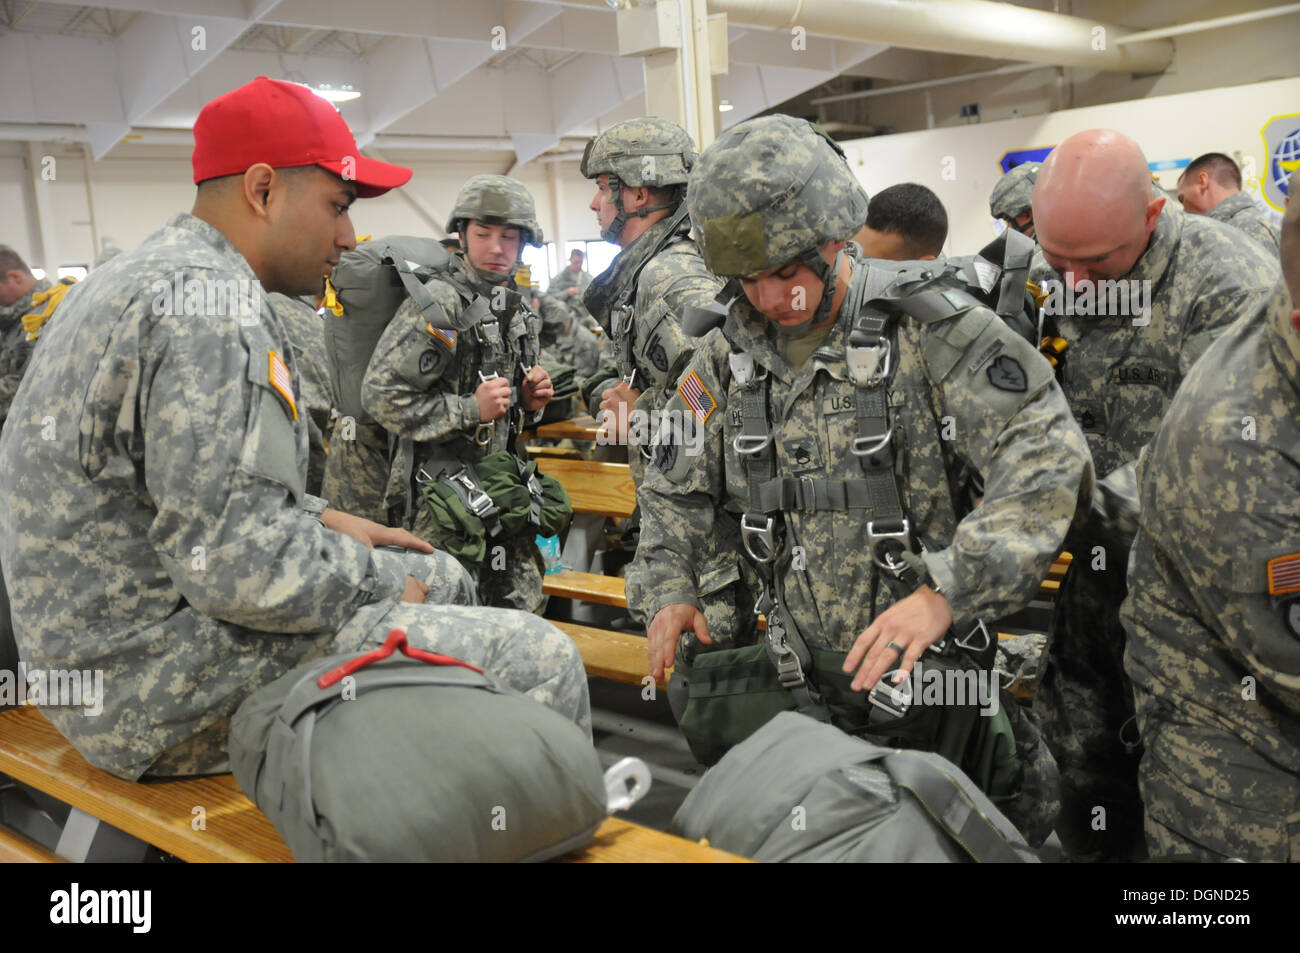 Spartan paratroopers with the 4th Infantry Brigade Combat Team (Airborne), 25th Infantry Division, go through a thorough inspection before a jump Oct. 17, 2013, on Joint Base Elmendorf-Richardson, Alaska. Jumpmasters and riggers are responsible to insure - Stock Image